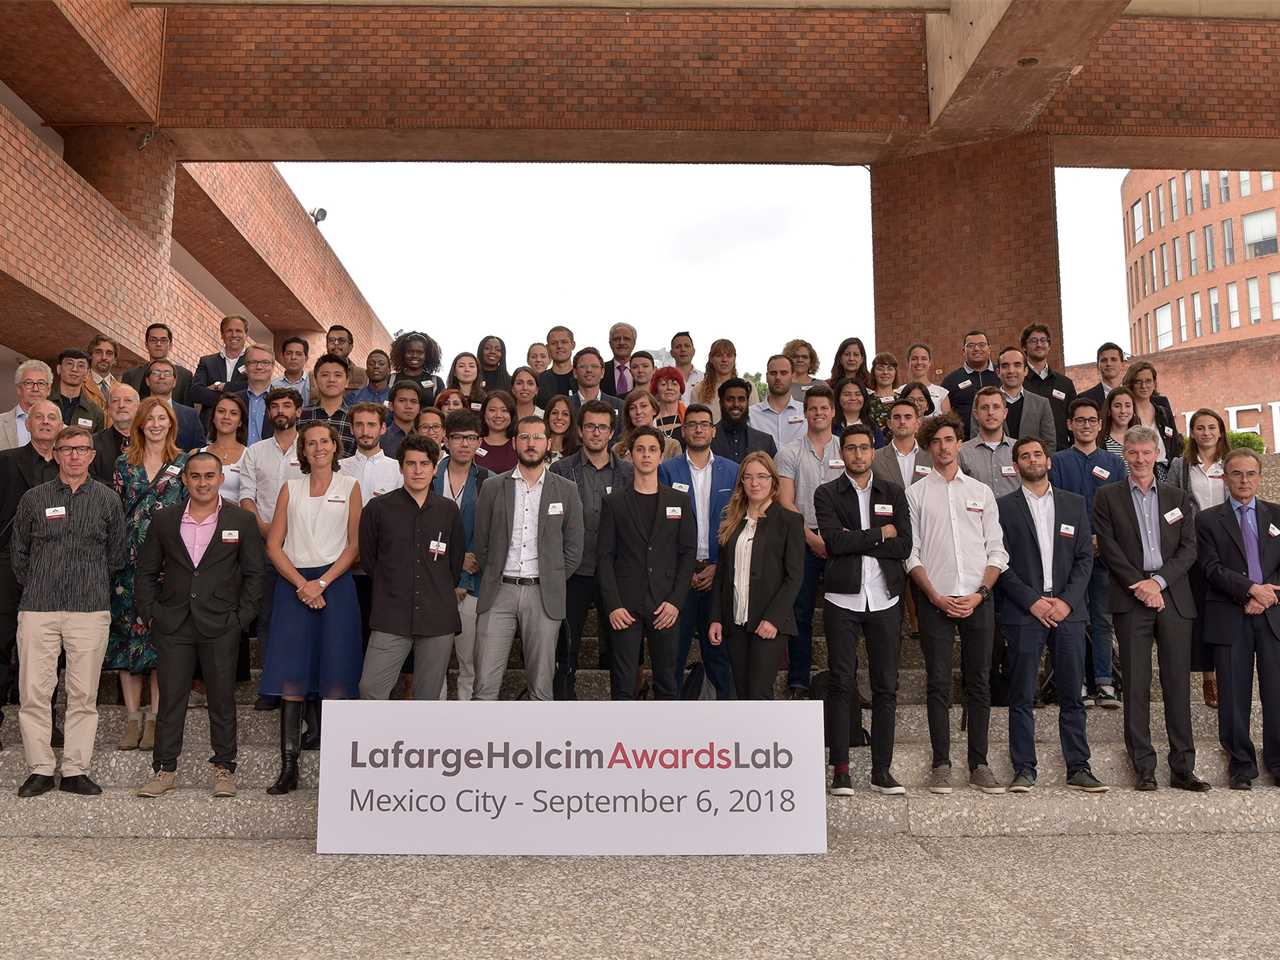 LafargeHolcim Next Generation Awards Lab 2018